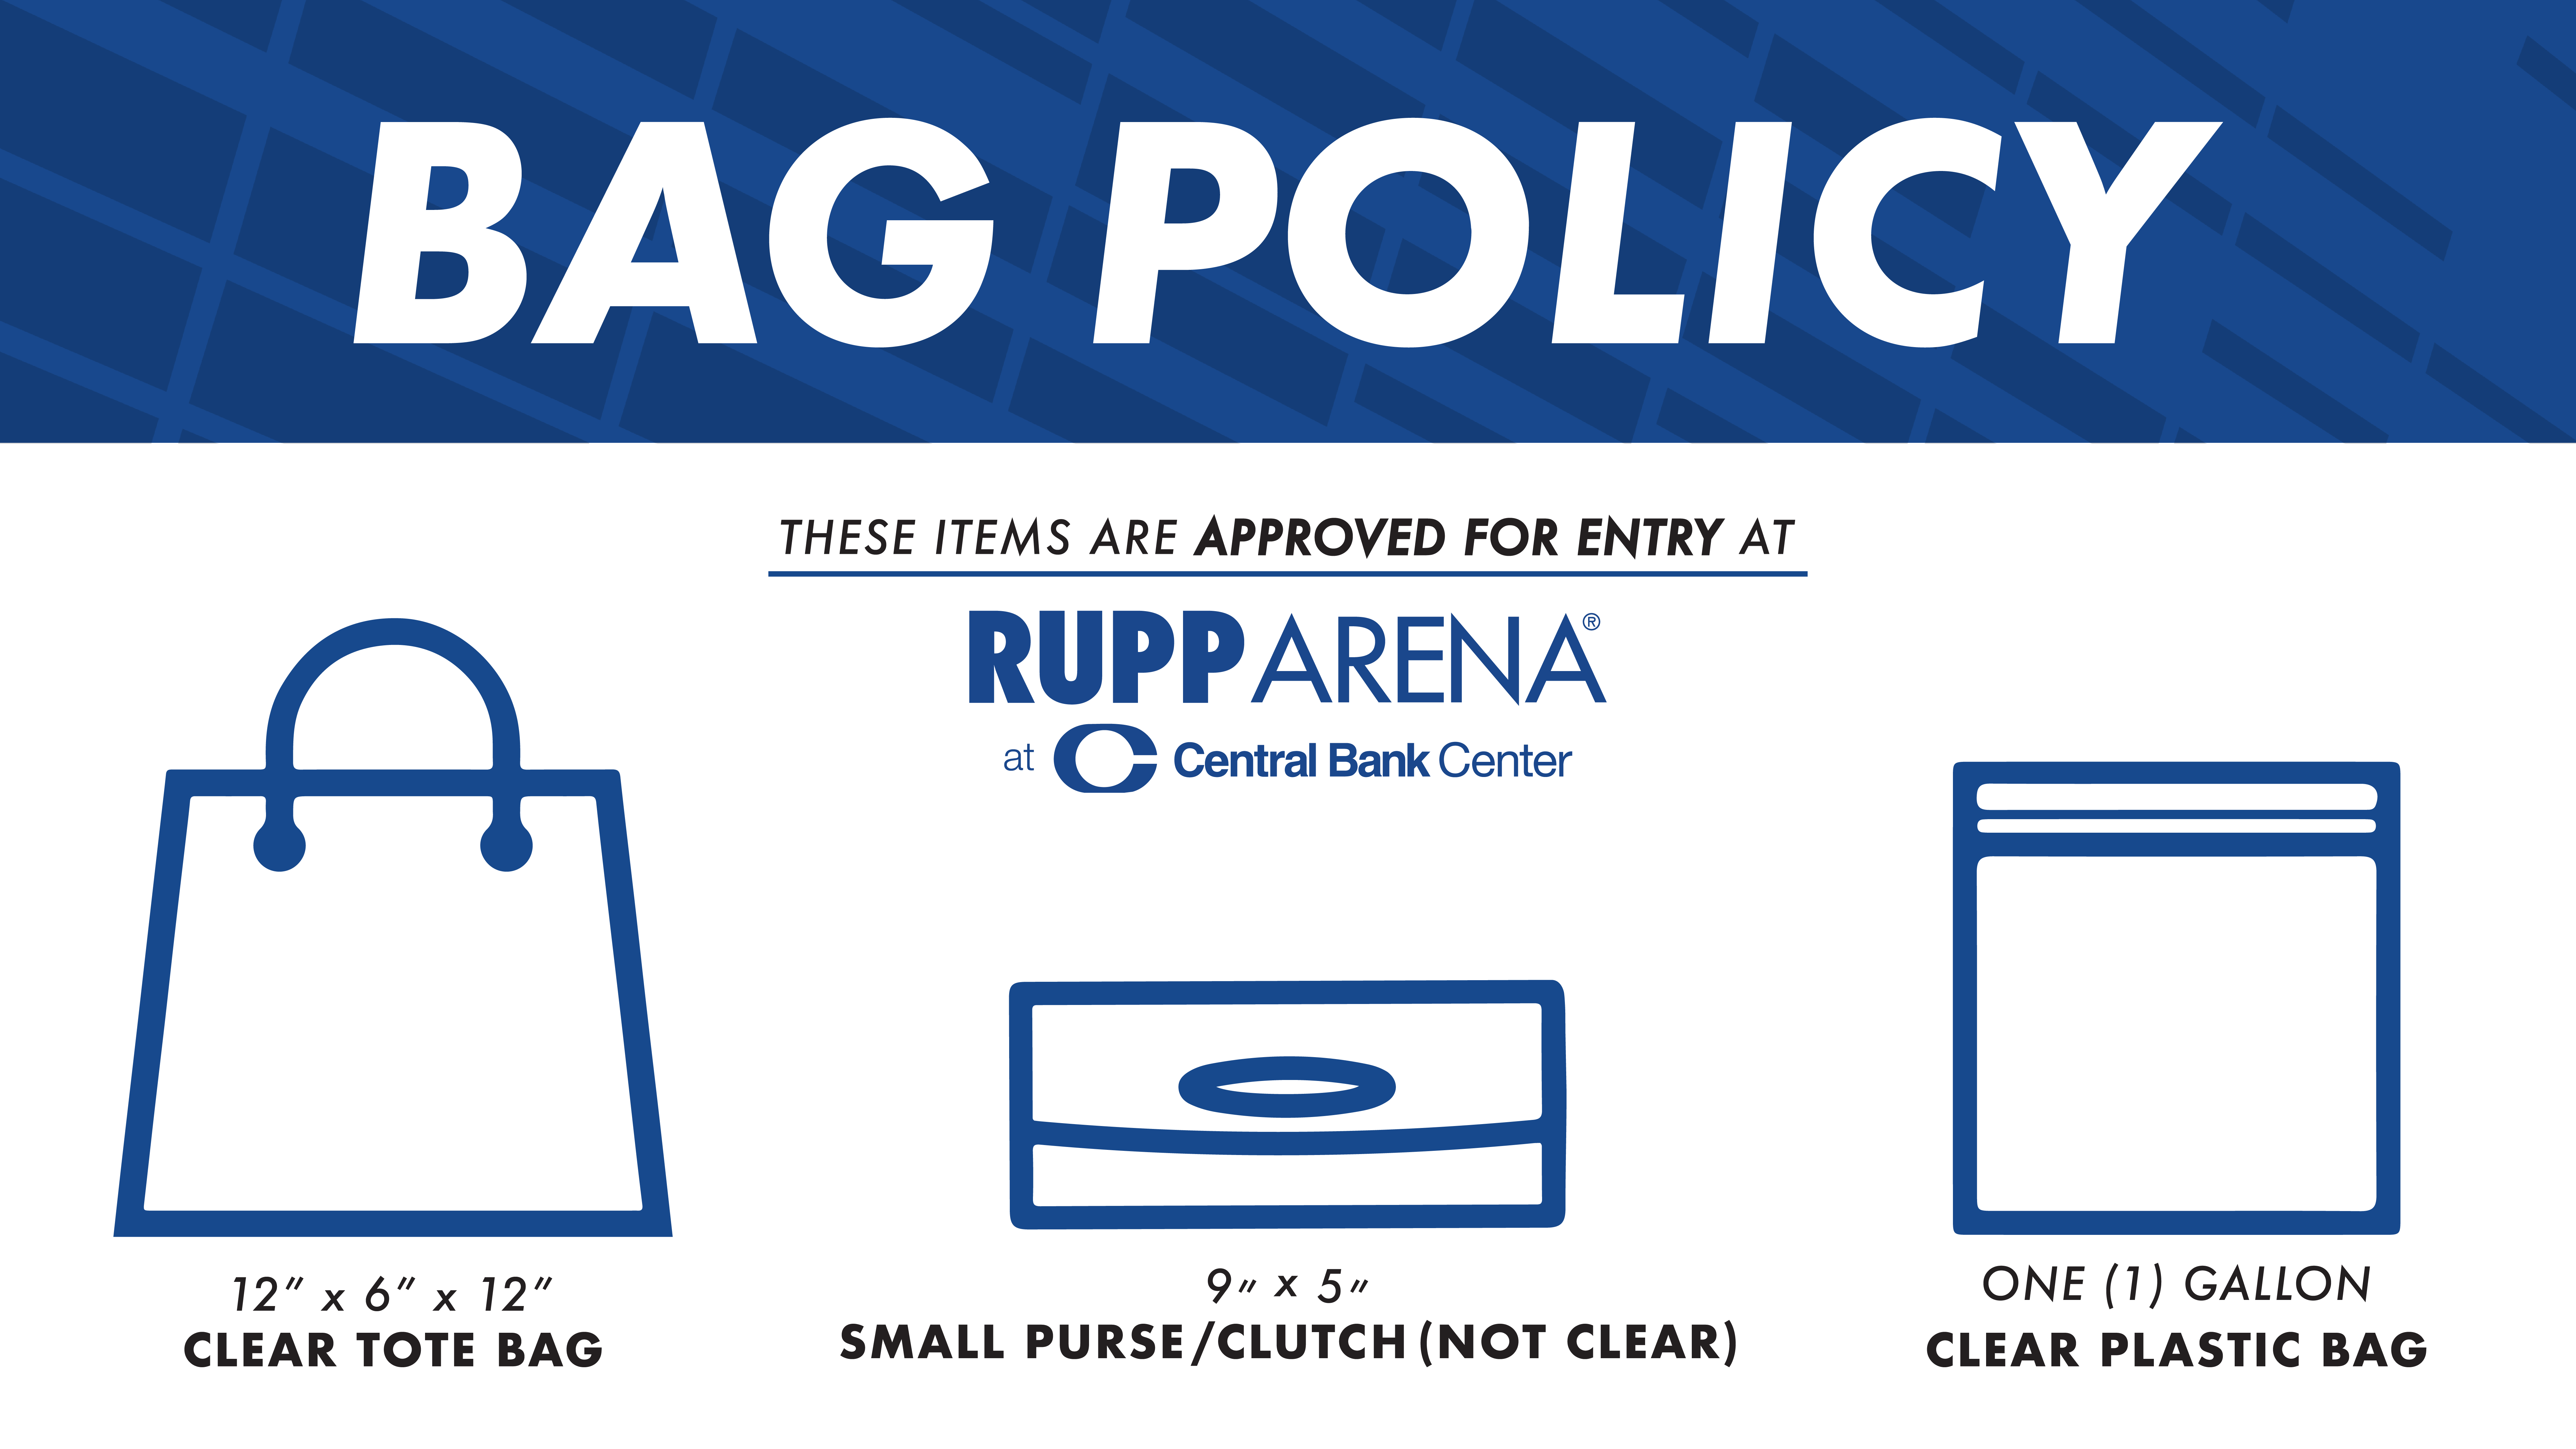 Bag Policy 1920x1080.png